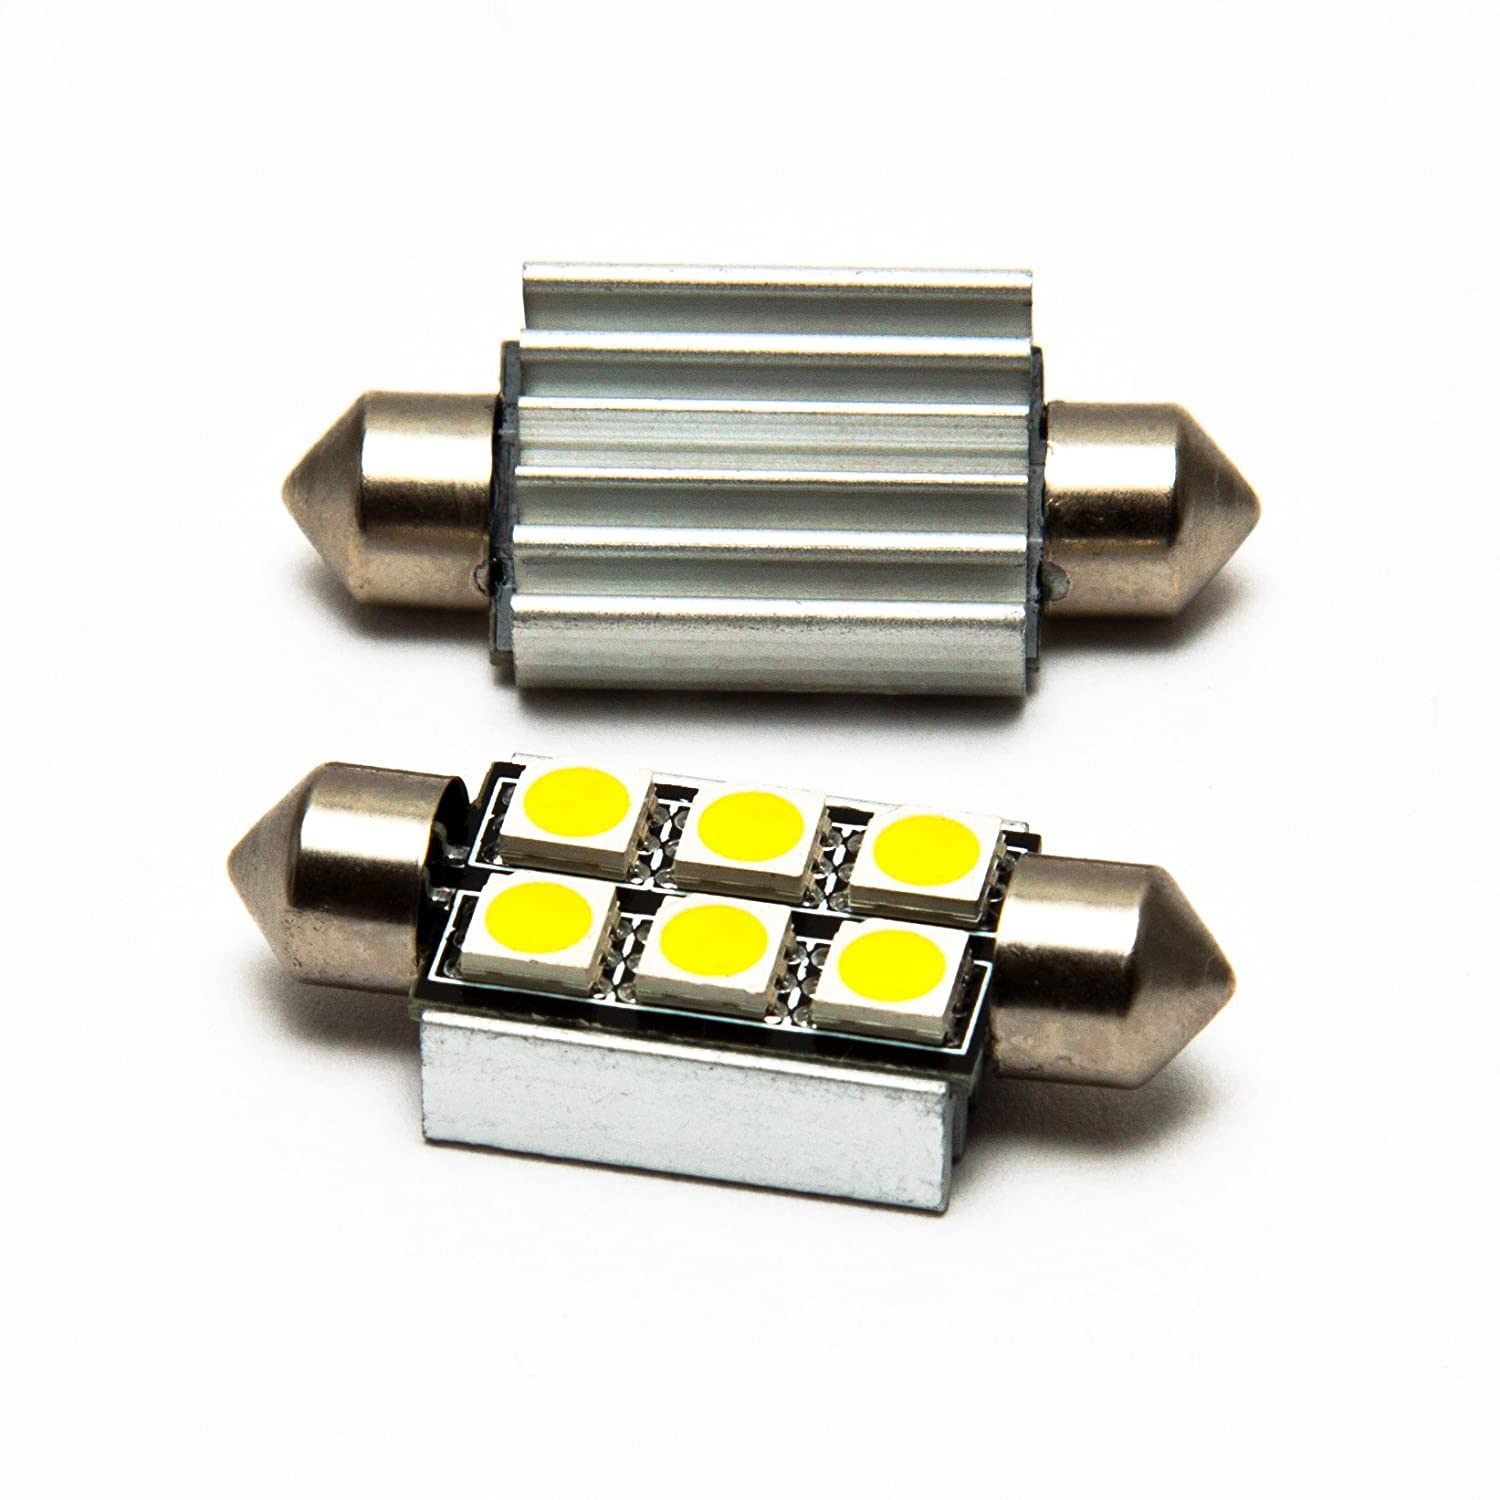 M.Tech - 2 bombillas C5W 6 SMD / LED Soffitte CanBus con resistencia (no dan error en el vehículo), color blanco: Amazon.es: Coche y moto